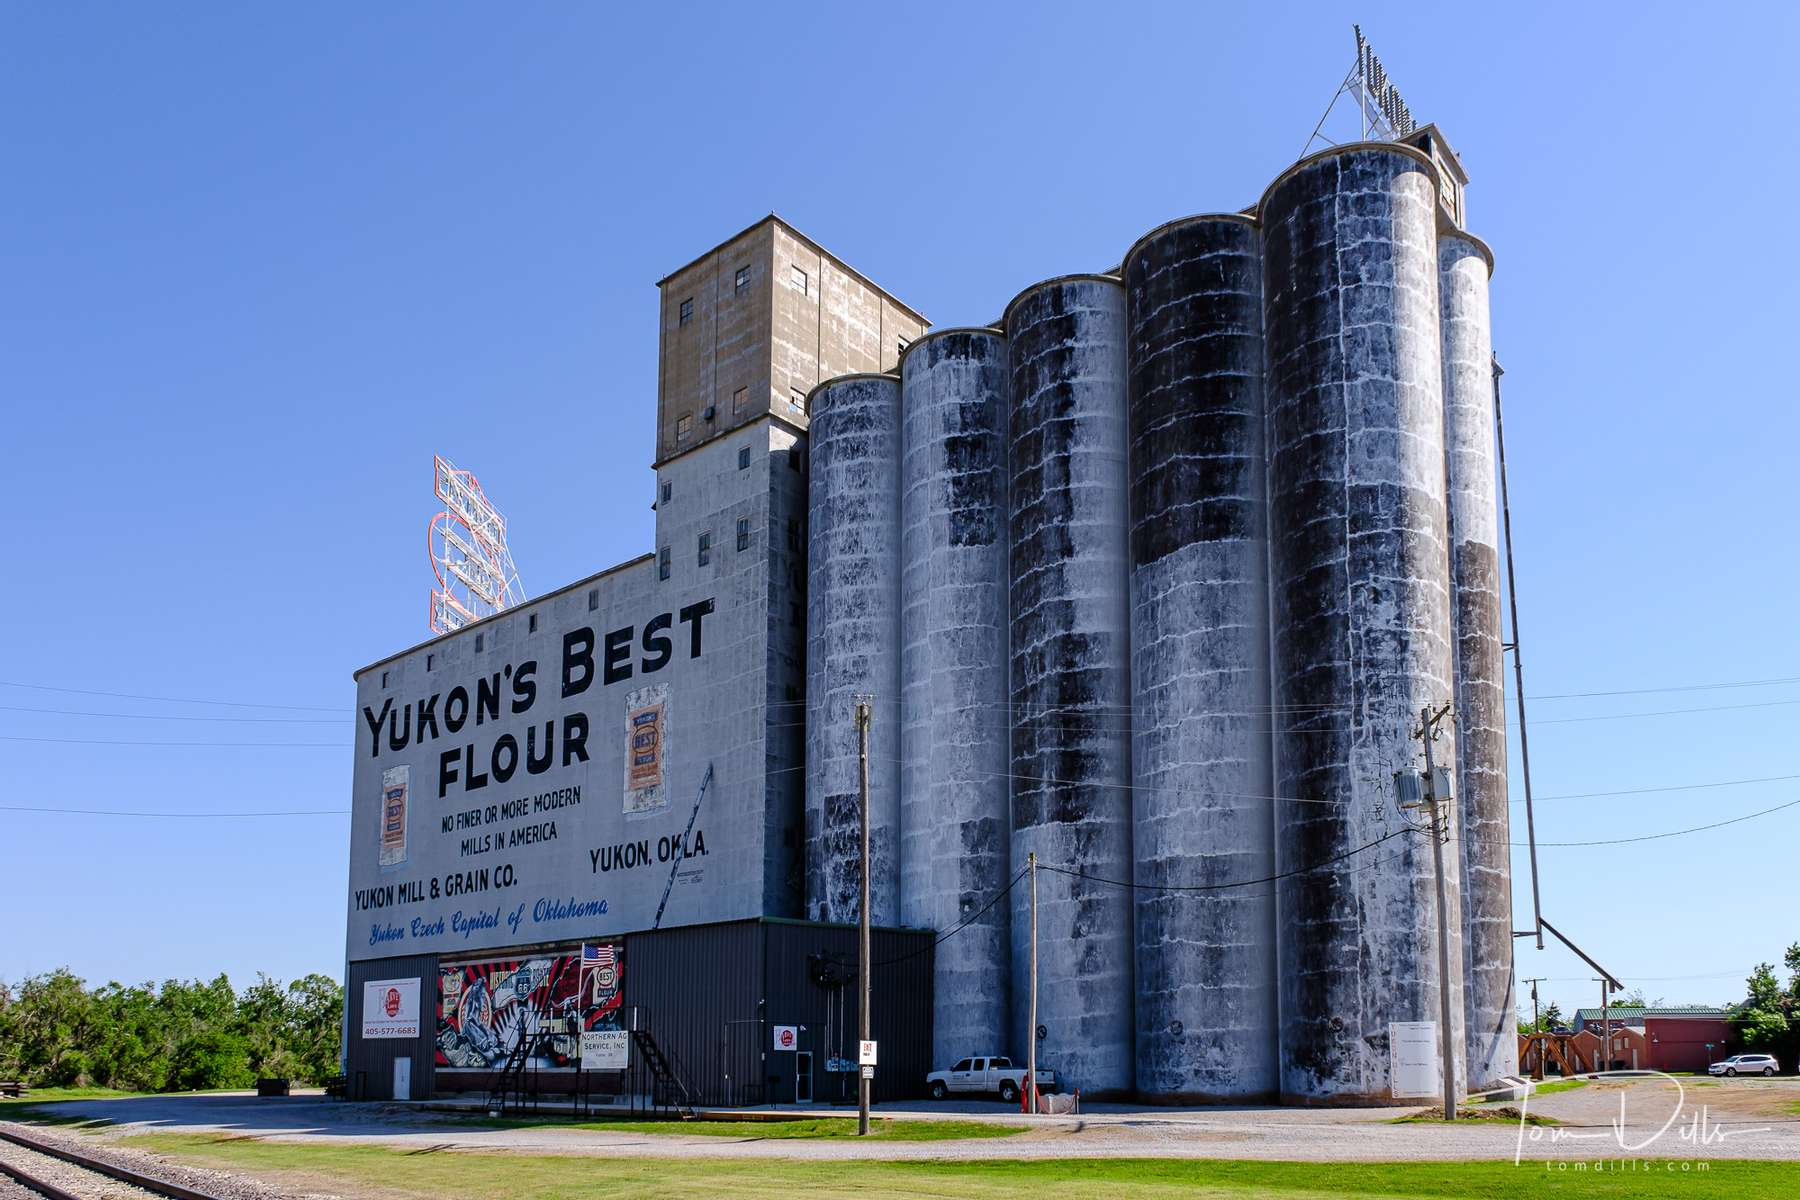 {quote}Yukon's Best Flour{quote} mill located on Historic Route 66 in Yukon, Oklahoma